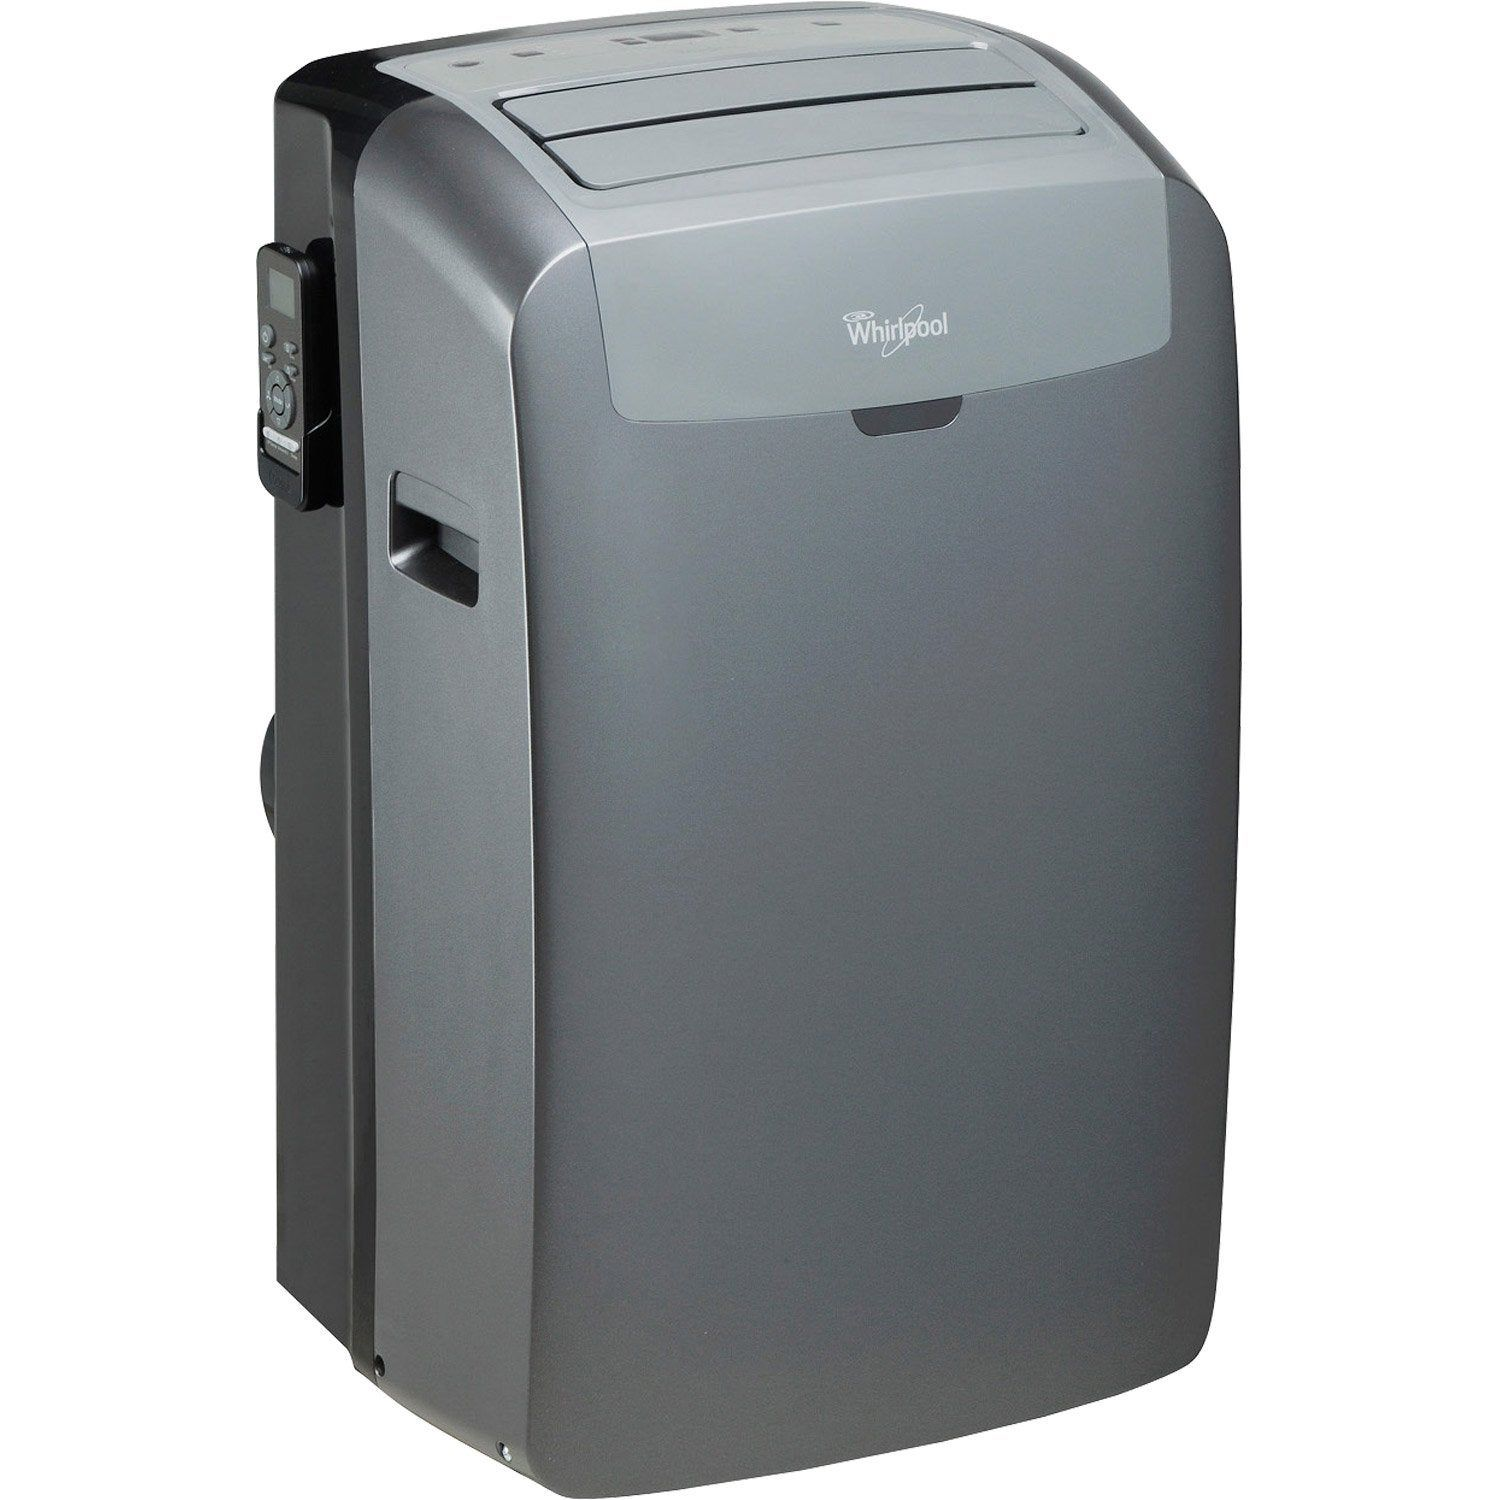 Climatiseur Mobile Reversible Whirlpool Pacb12hp 3500 W Climatiseur Mobile Climatiseur Climatiseur Reversible